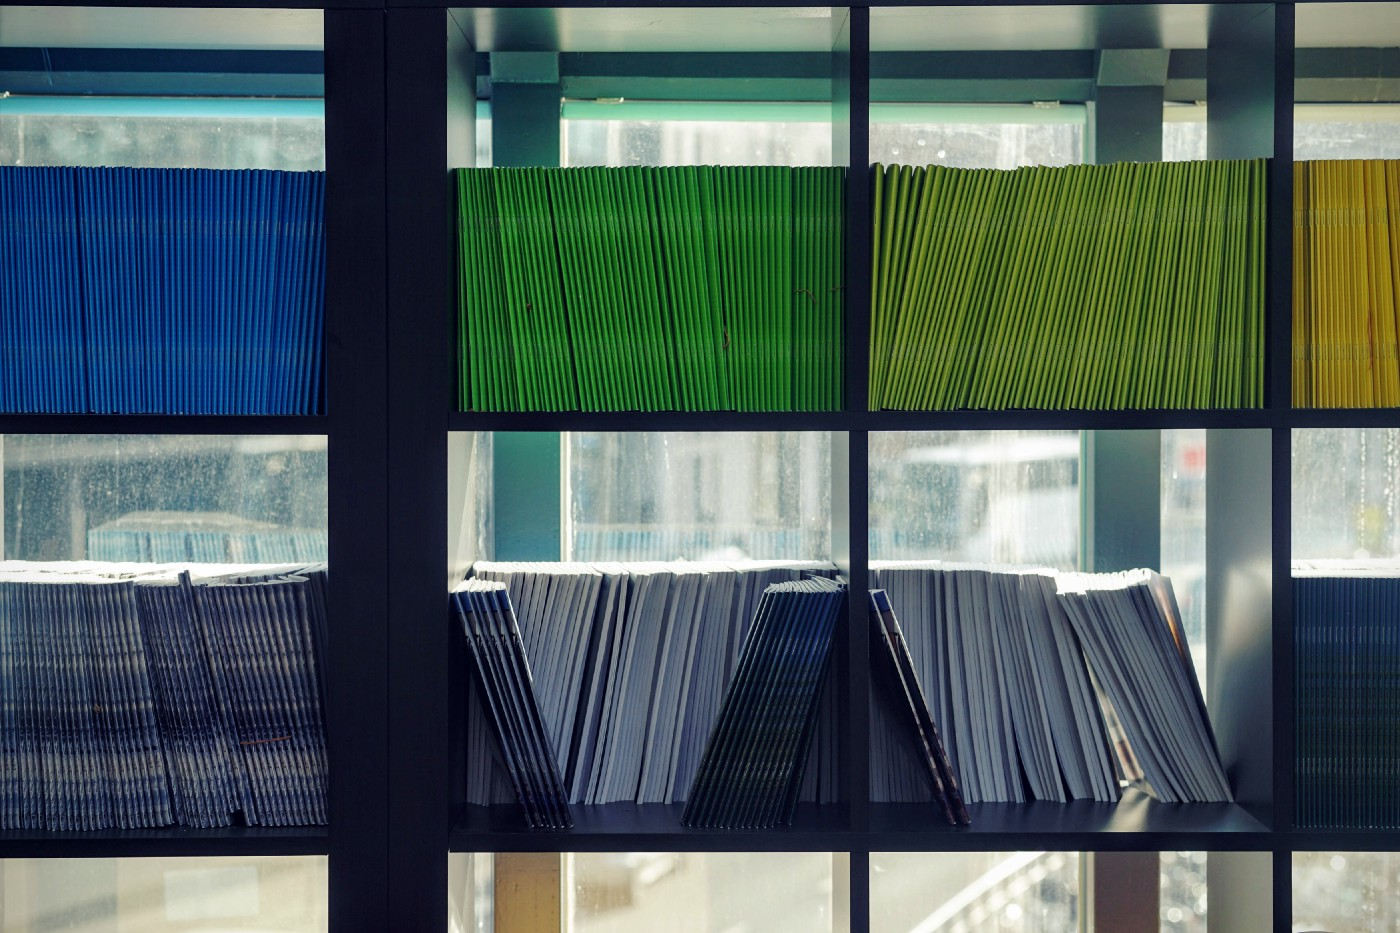 colored file folders organized by color on shelves